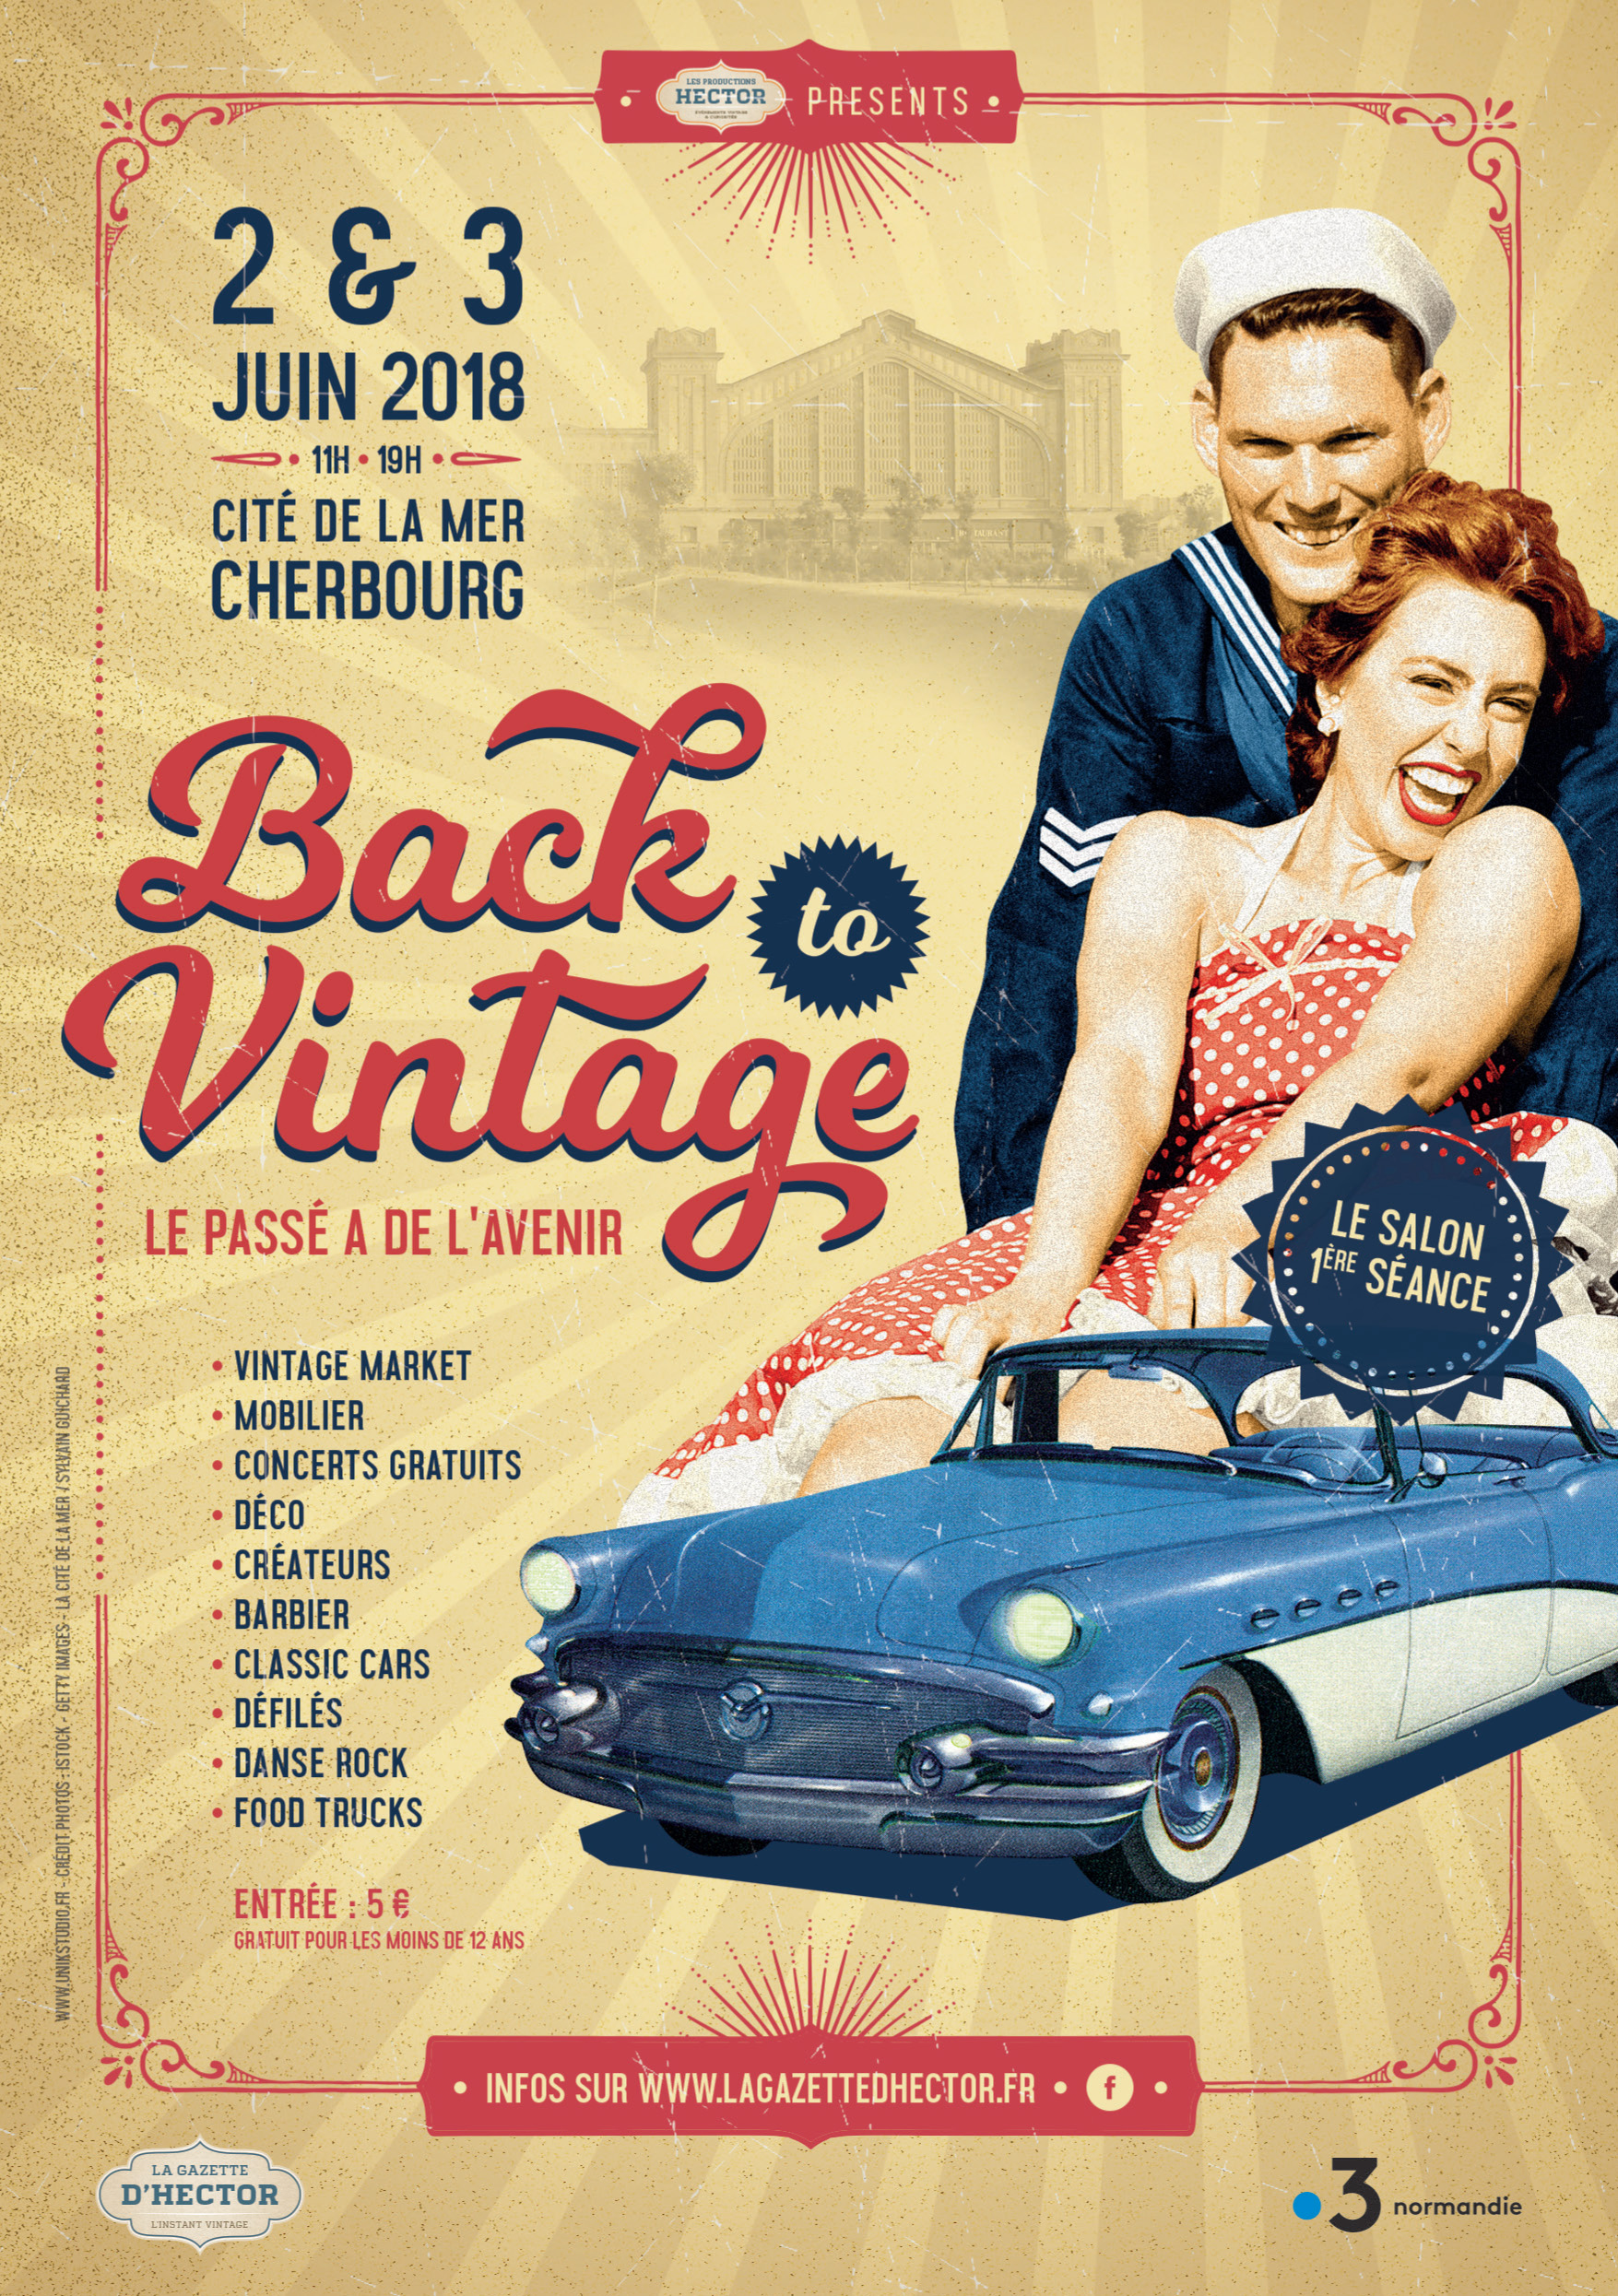 BACK TO VINTAGE CHERBOURG